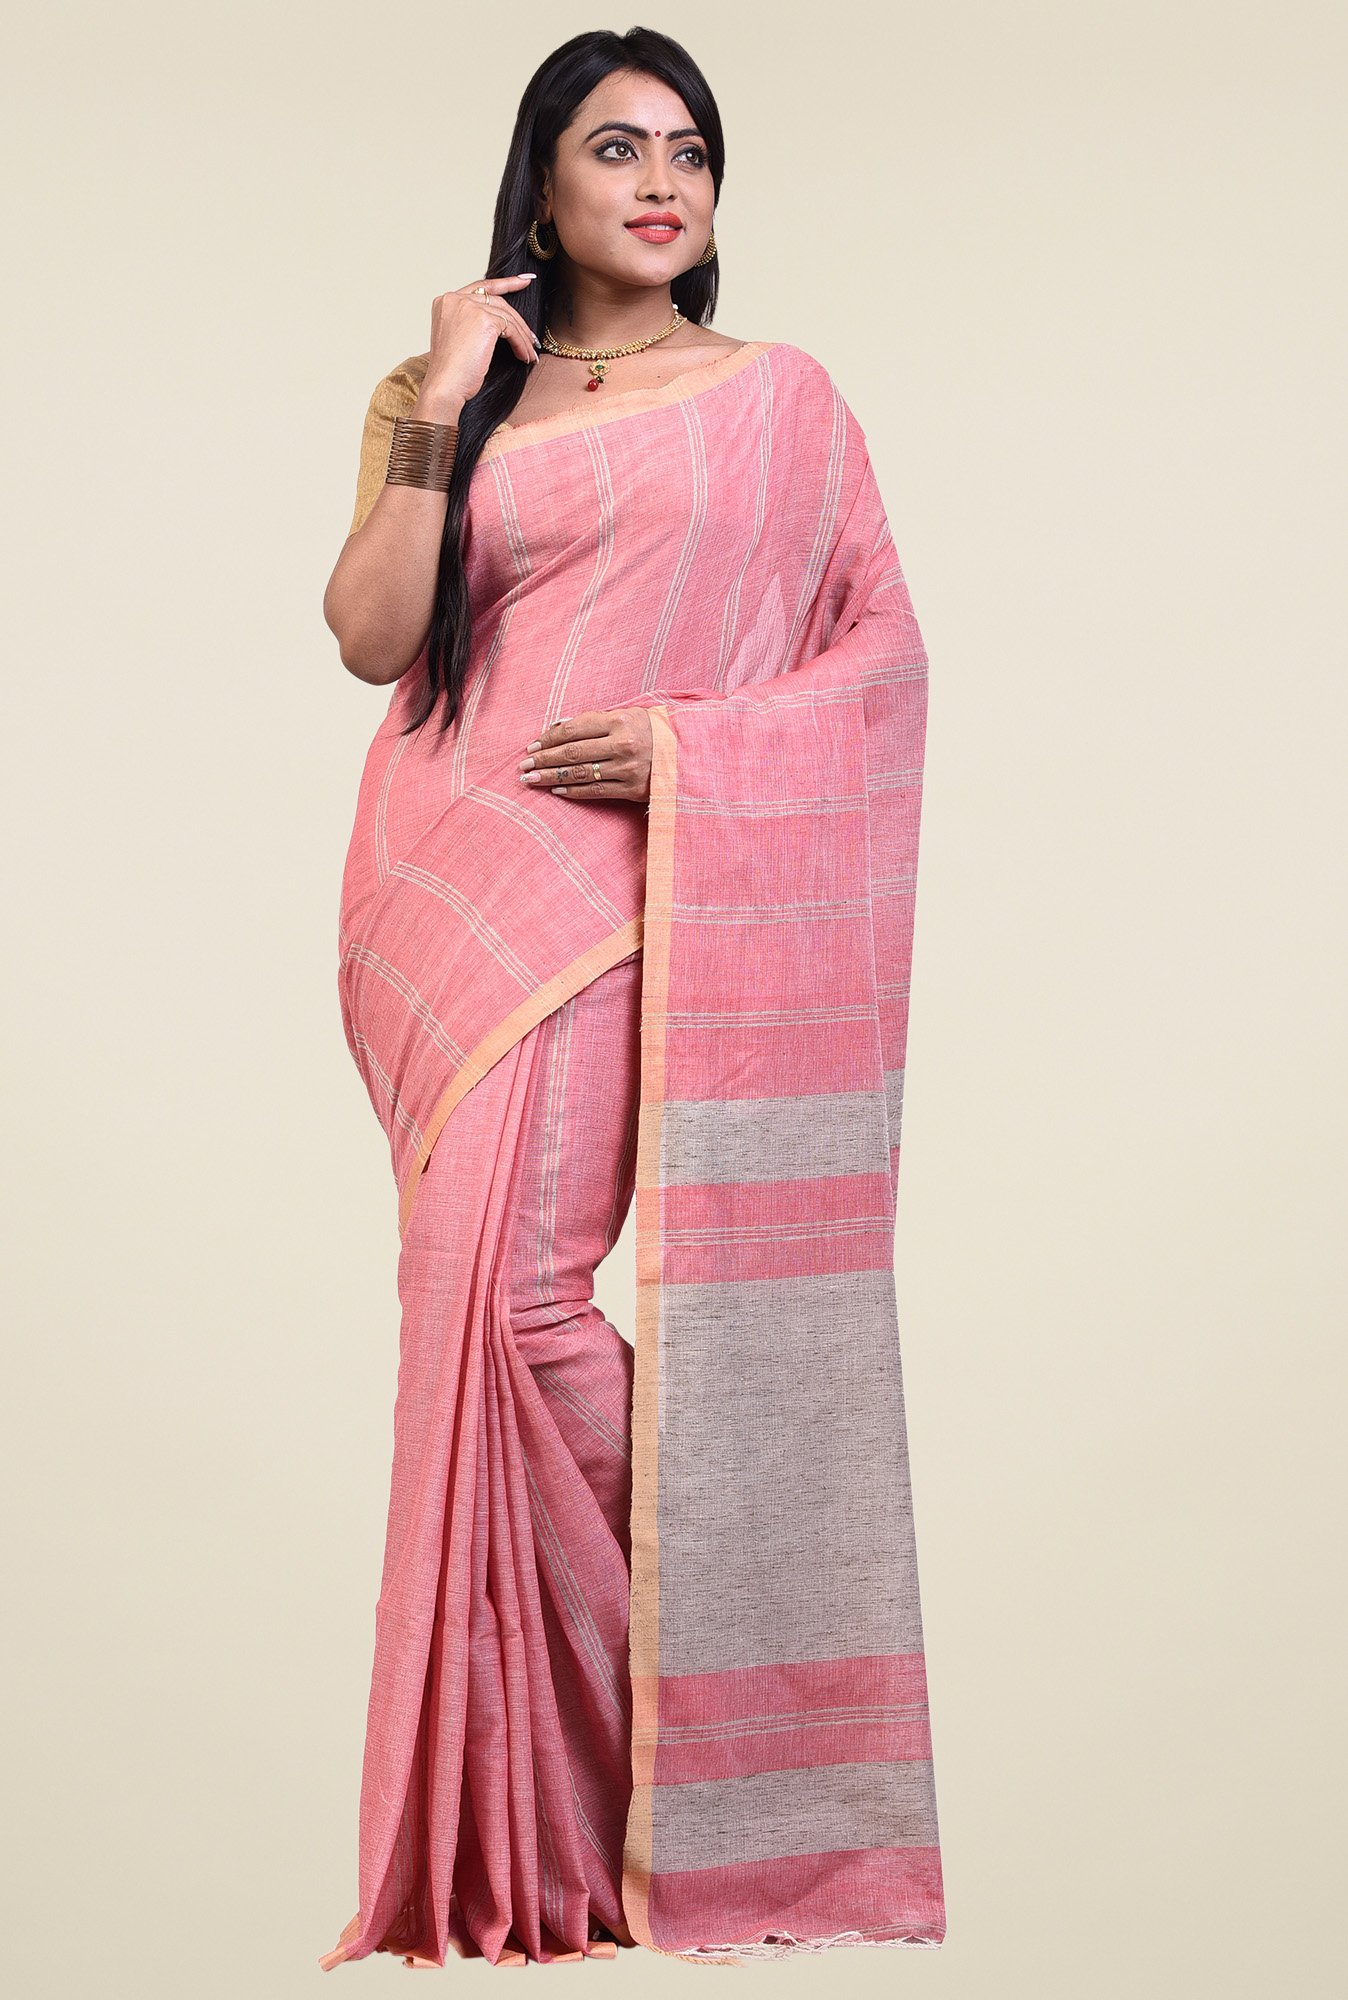 Bengal Handloom Pink Embroidered Saree